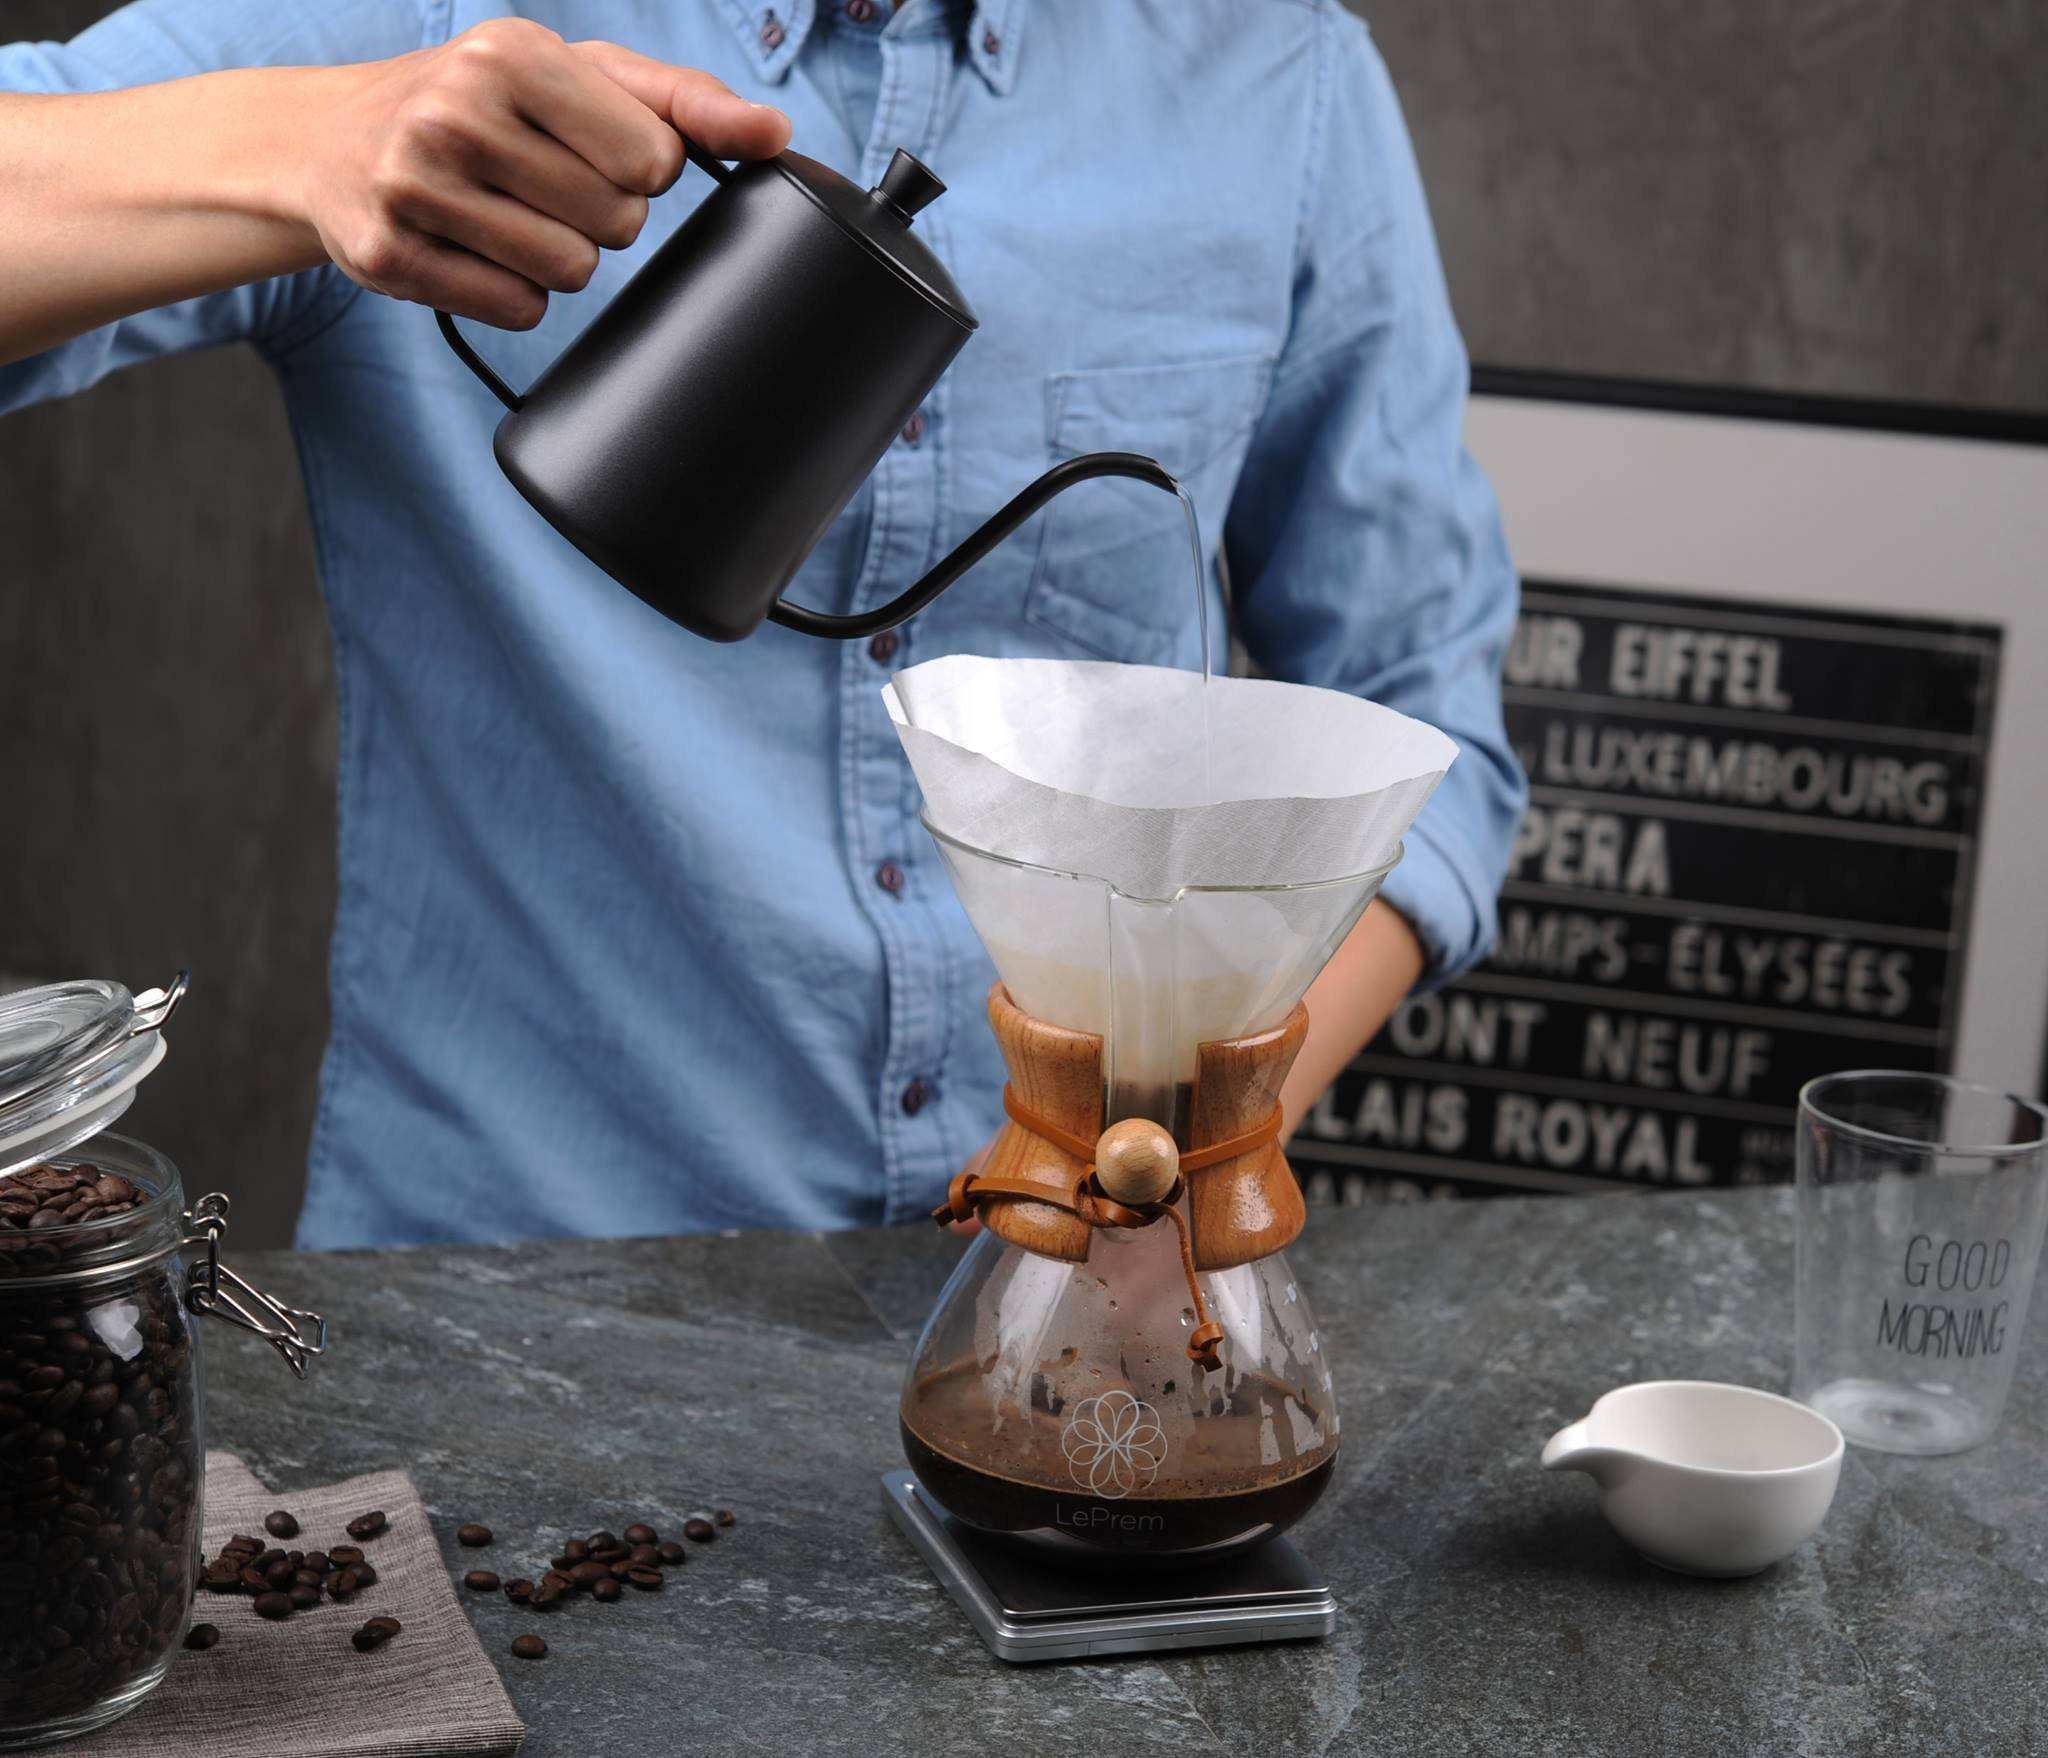 Pour Over Coffee Maker | Classic Hand Drip Brewer for Paper Filter | Hand Crafted Strong Borosilicate Glass with Lid, Easy Clean and Better Coffee